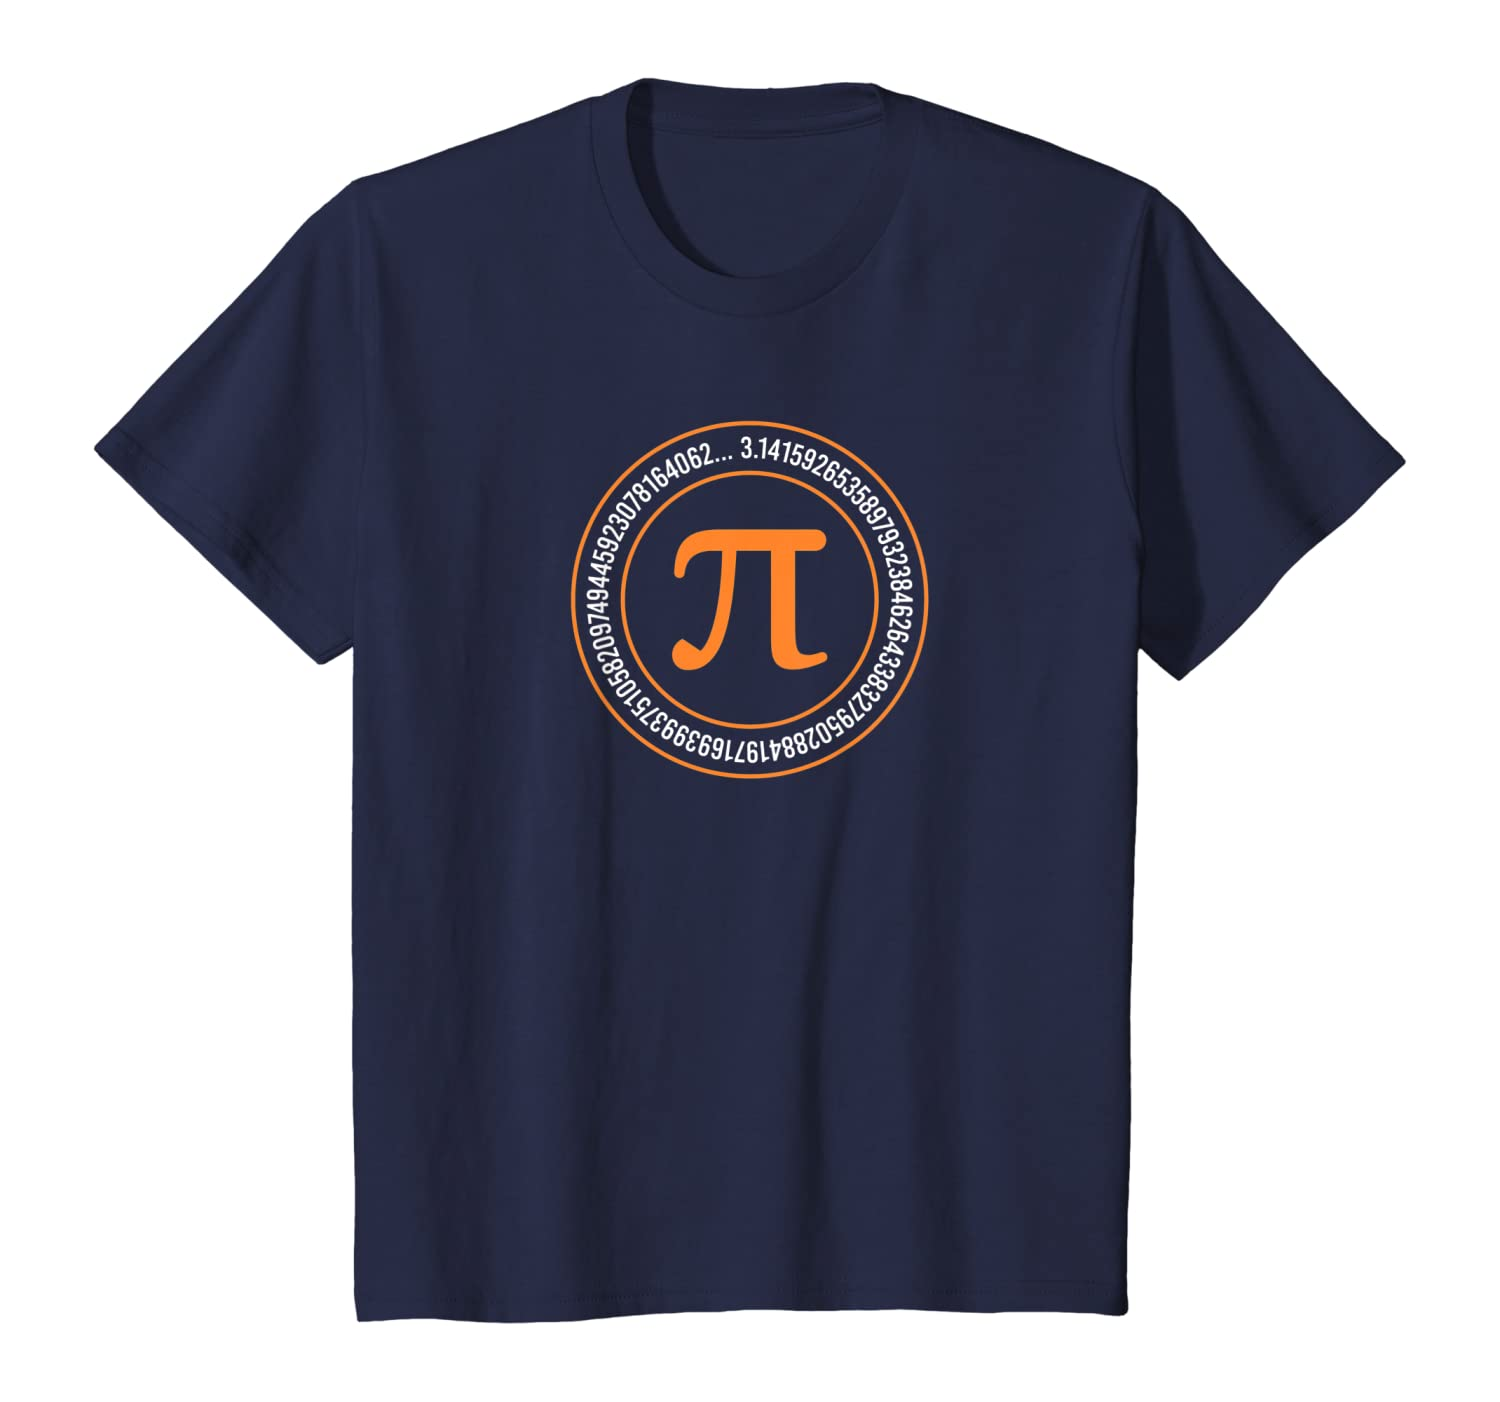 3,14 Pi Number: Funny Math Science Gift T-Shirt